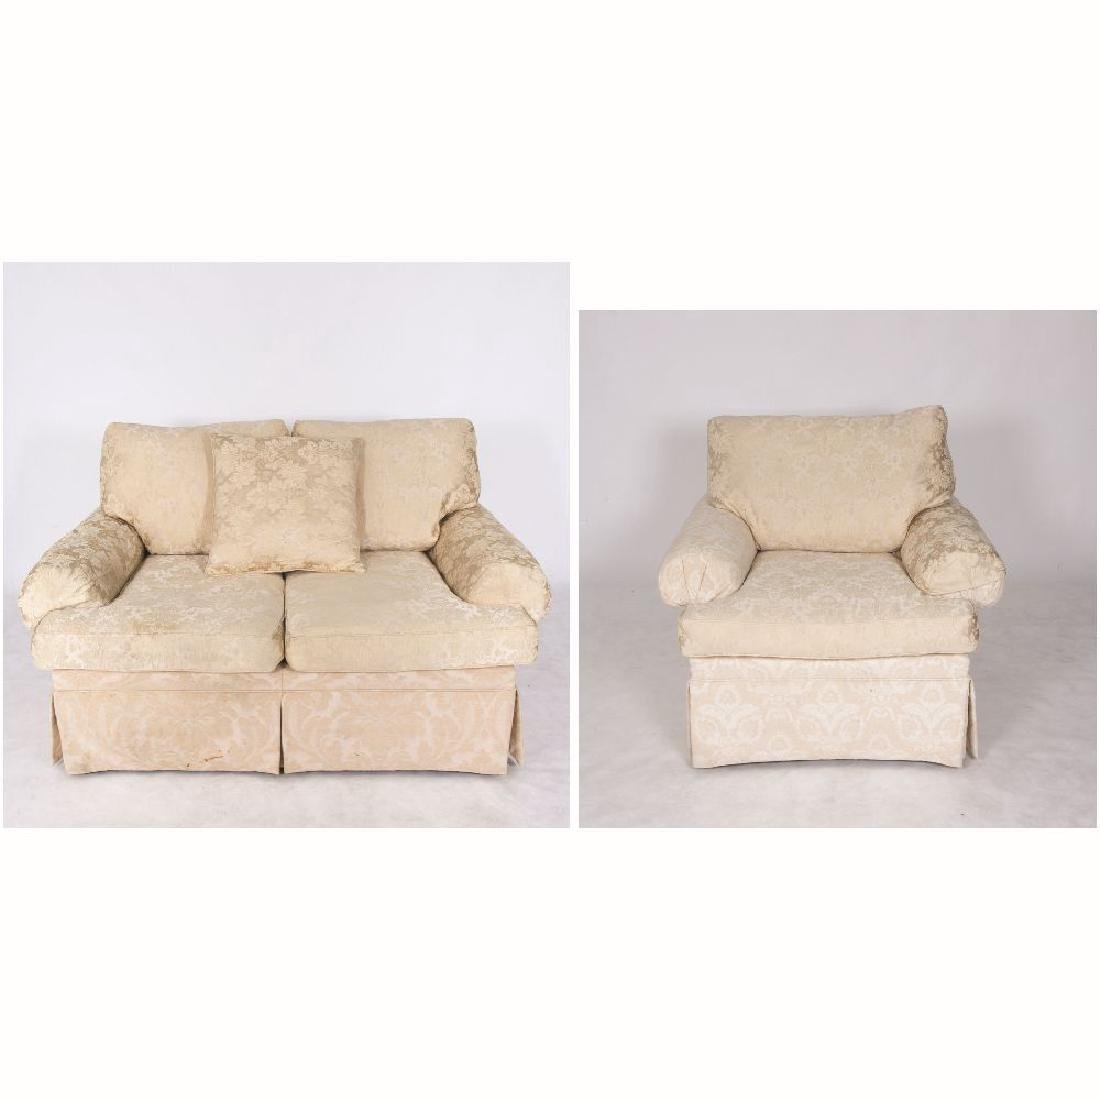 A Henredon Ivory Damask Upholstered Settee and